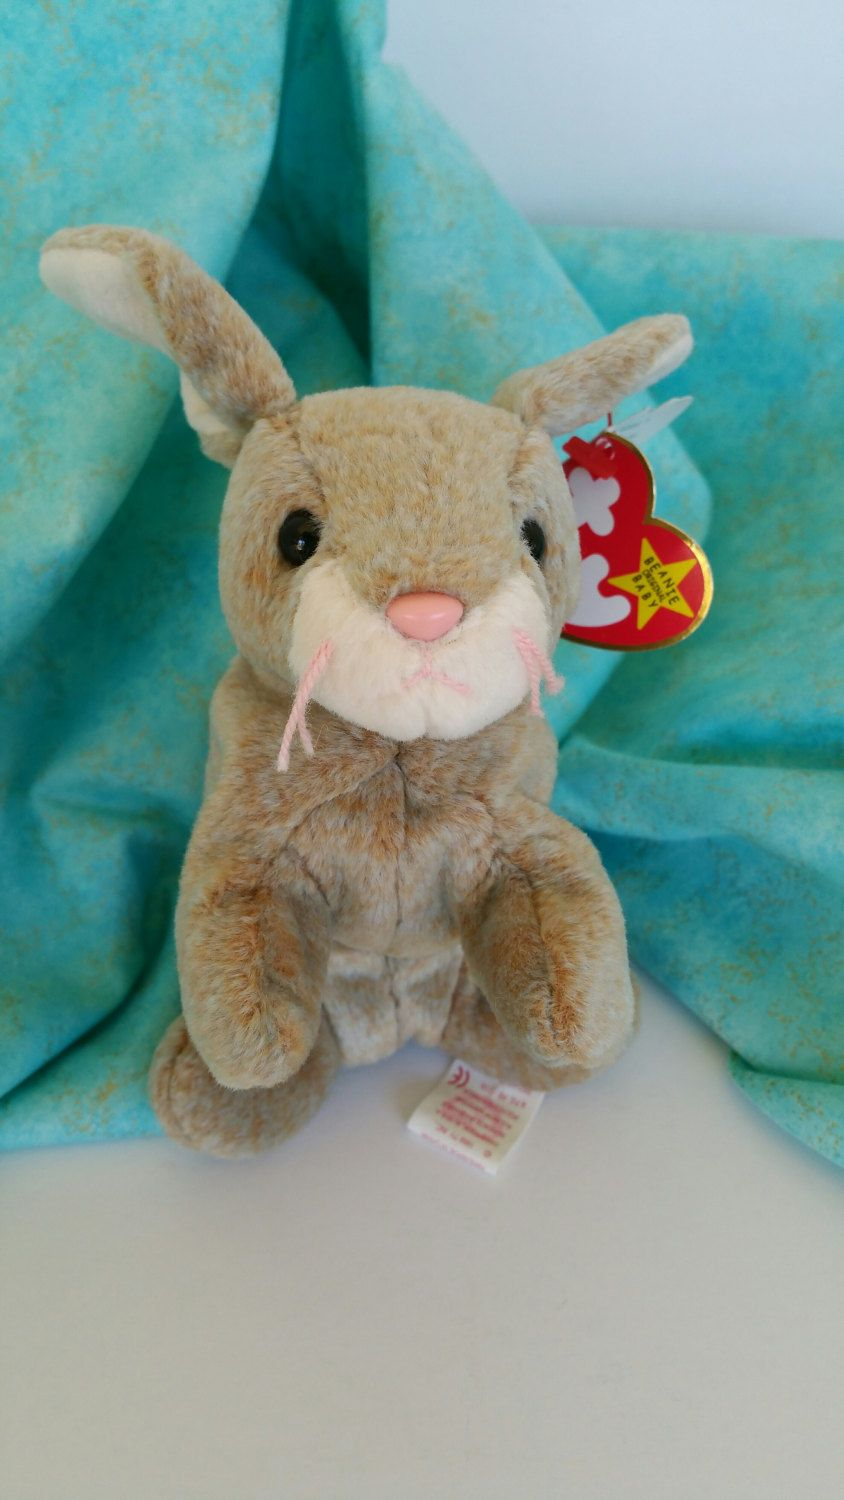 39790a91432 Nibbly Bunny Rabbit Vintage TY Beanie Baby RARE Original Collectible Easter  Decor Nursery Baby Shower Birthday Party Boy Girl Spring Decor by ...